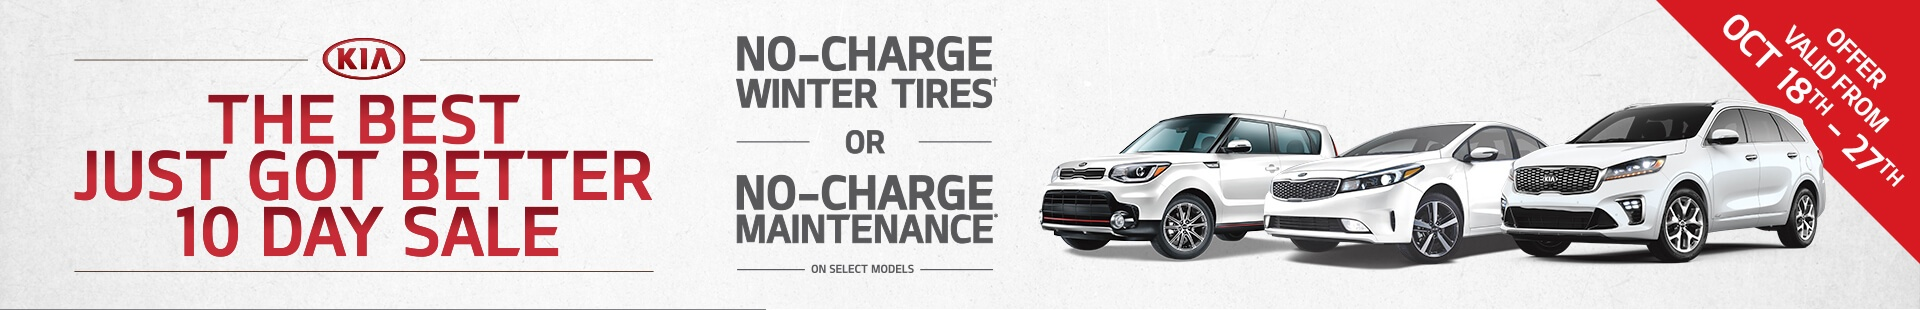 Best Yet Sales Event. 0% Financing plus no-charge maintenance.